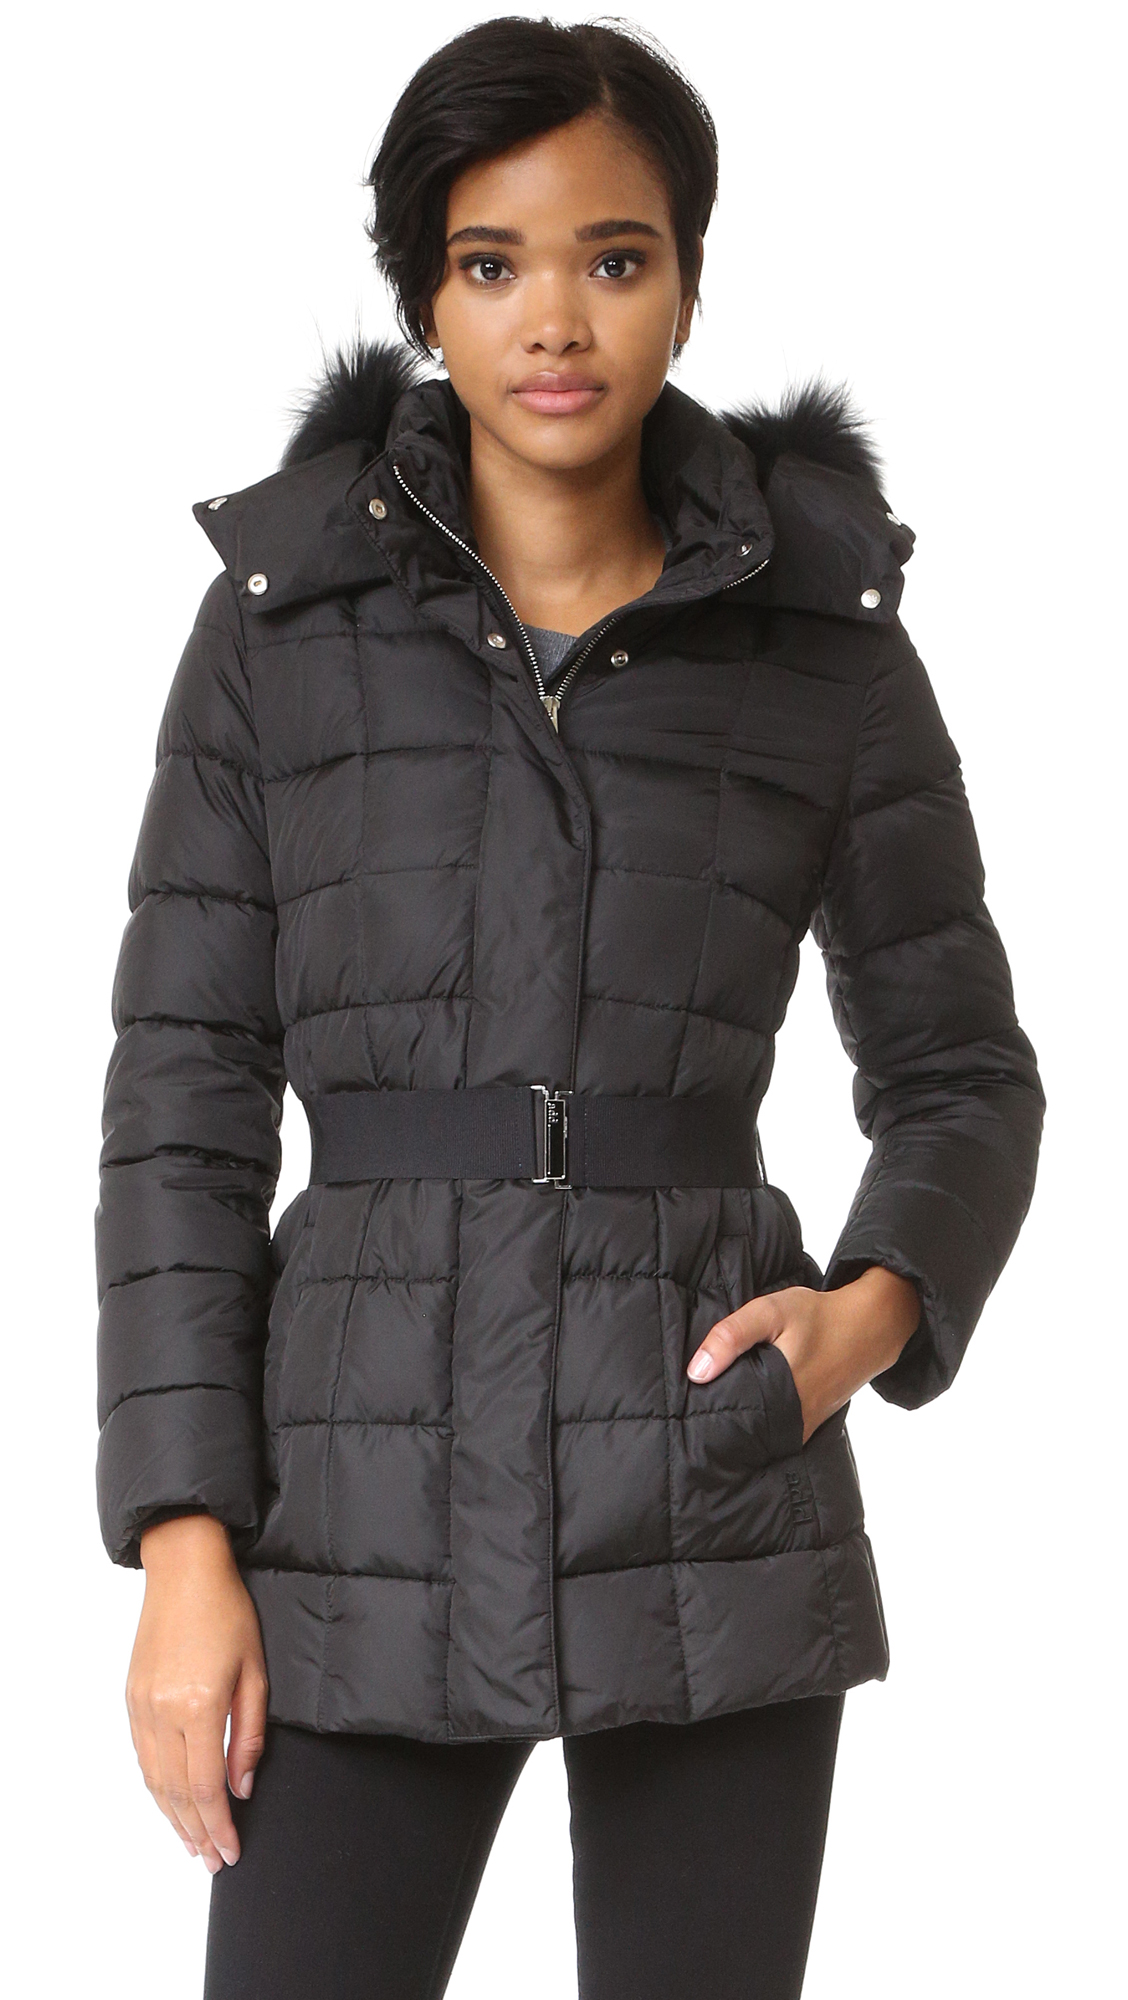 Add Down Down Jacket With Fur - Black at Shopbop